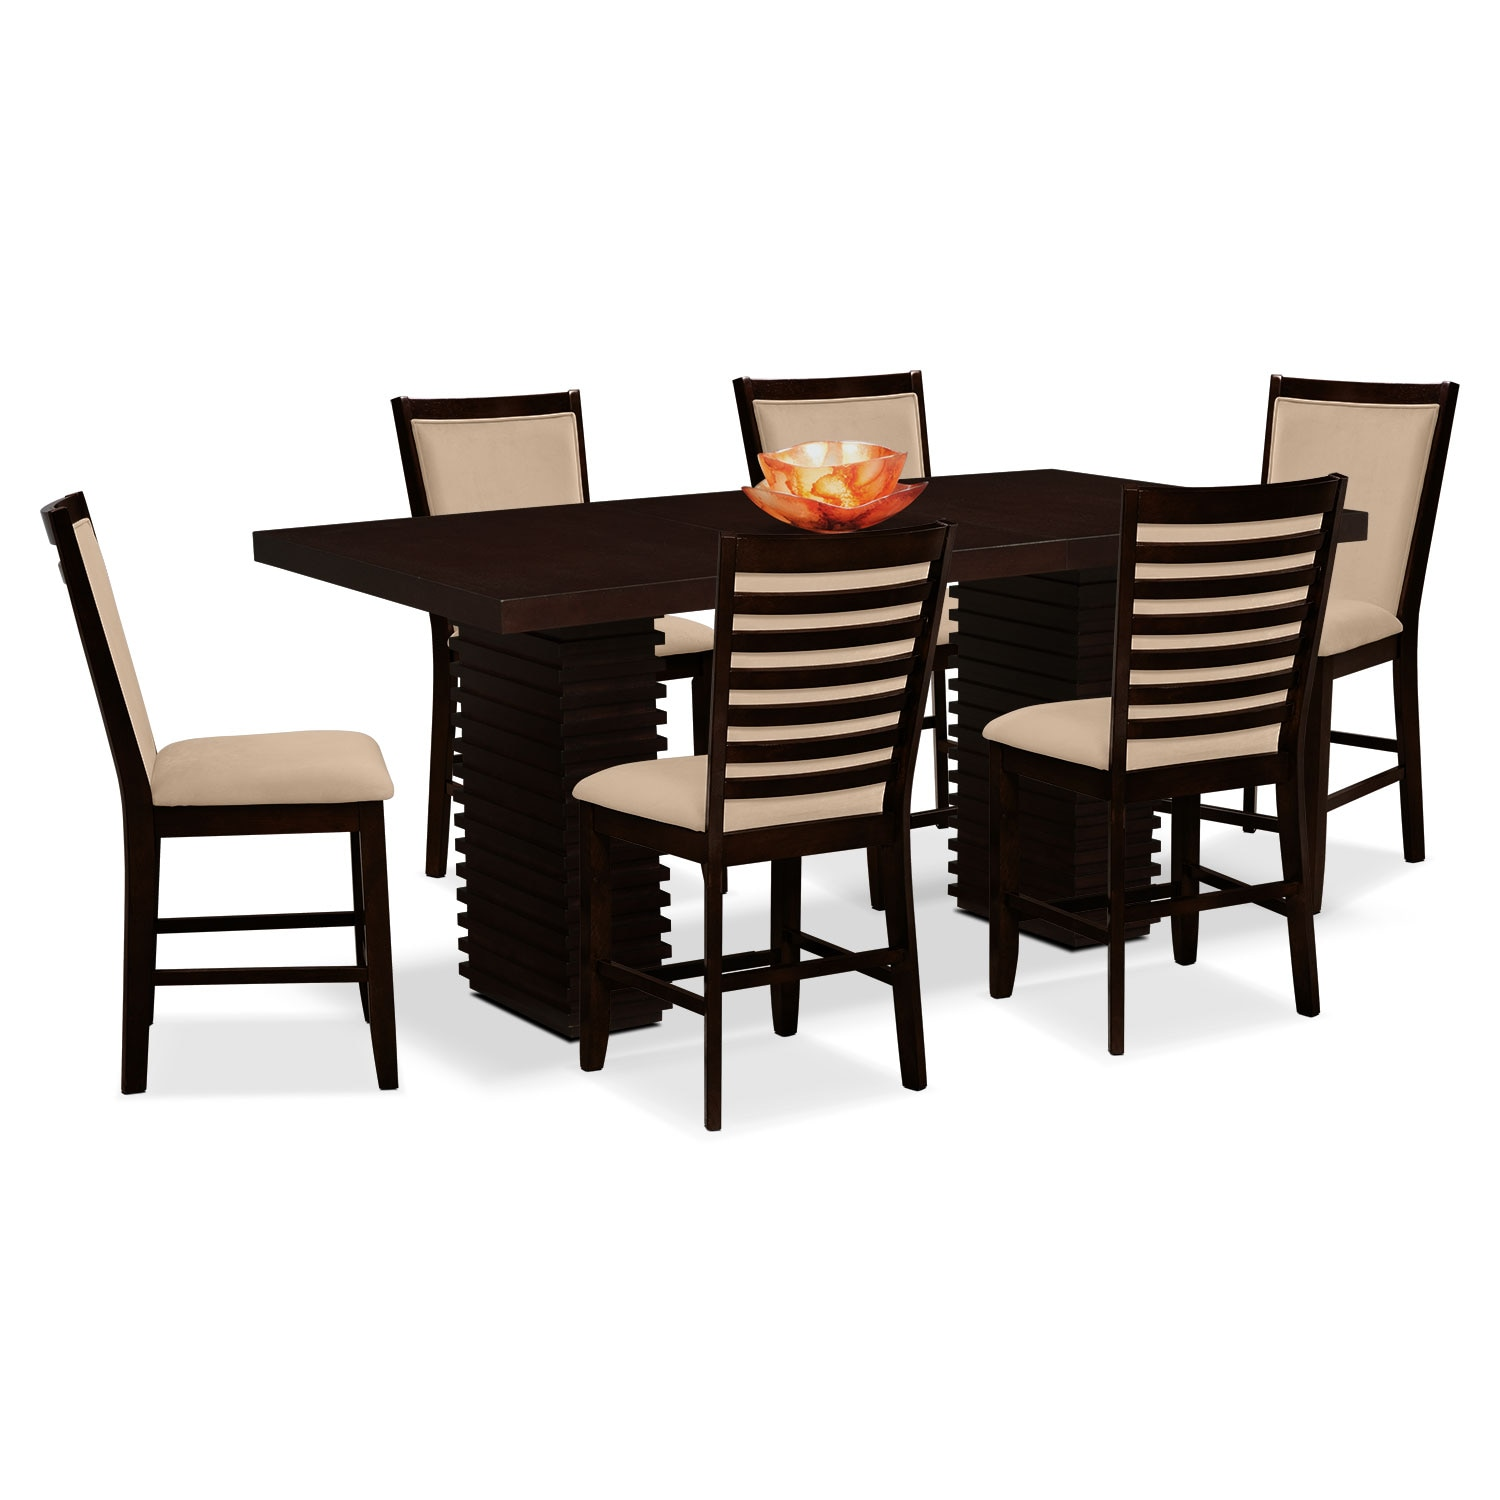 Paragon Counter Height Table And 6 Chairs Camel American Signature Furniture